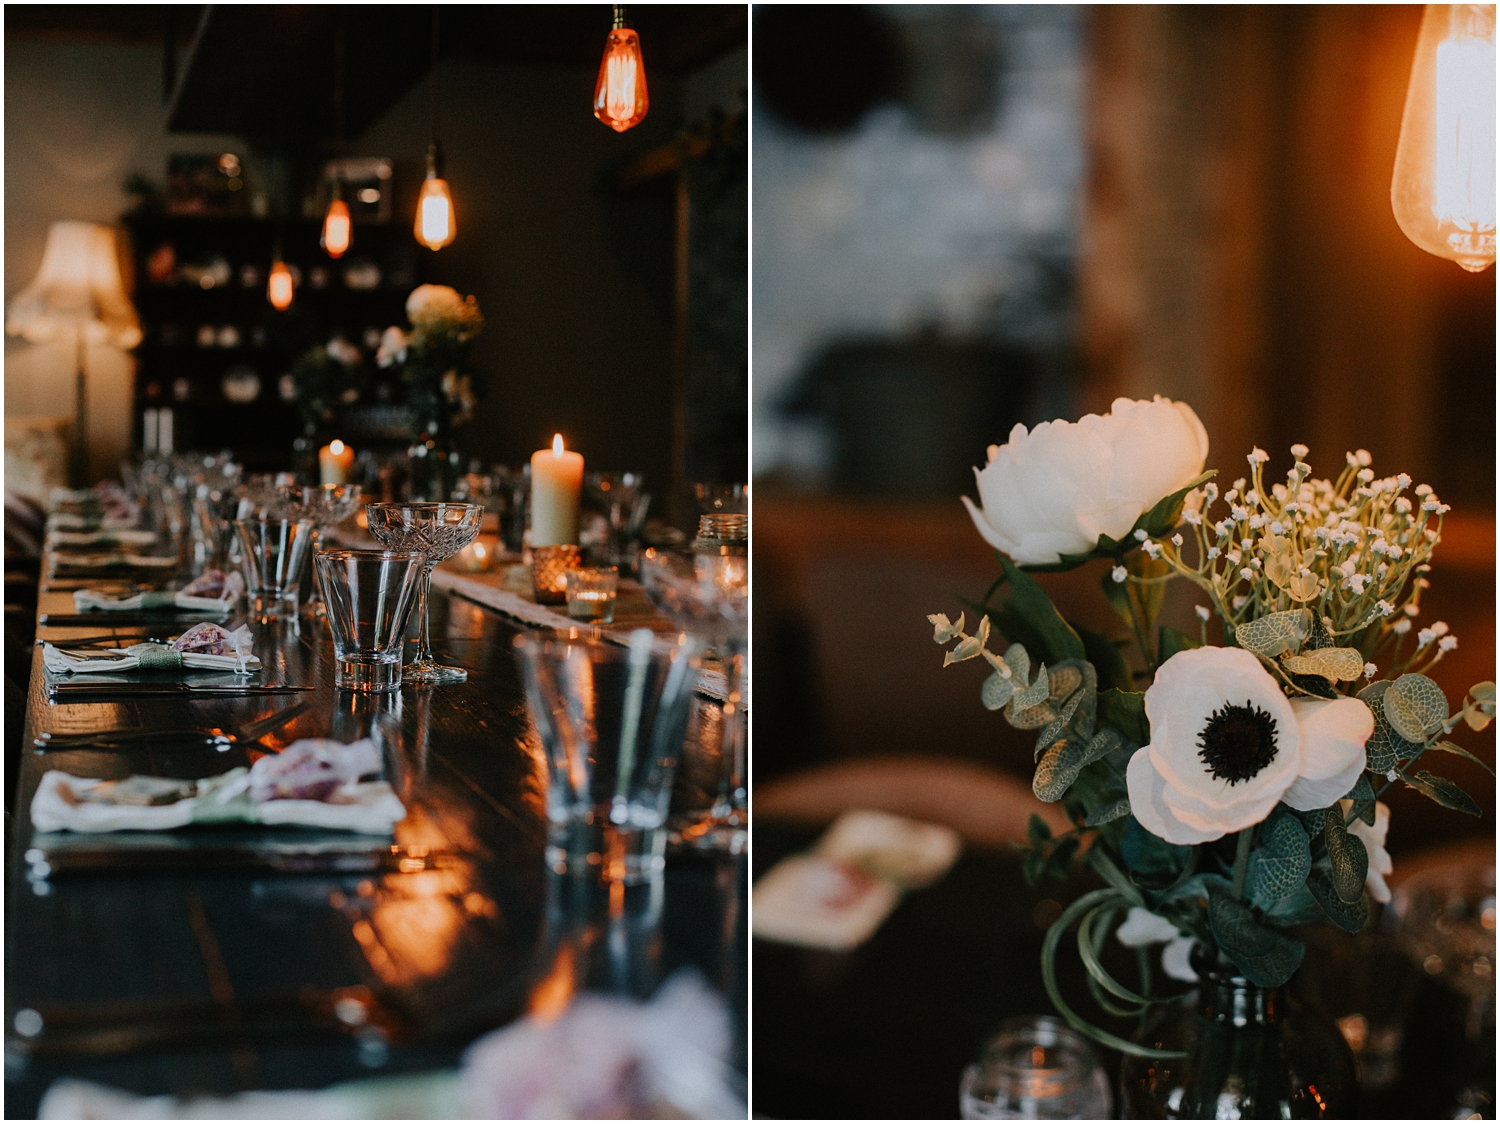 A stunning boho table decor at the Bothy